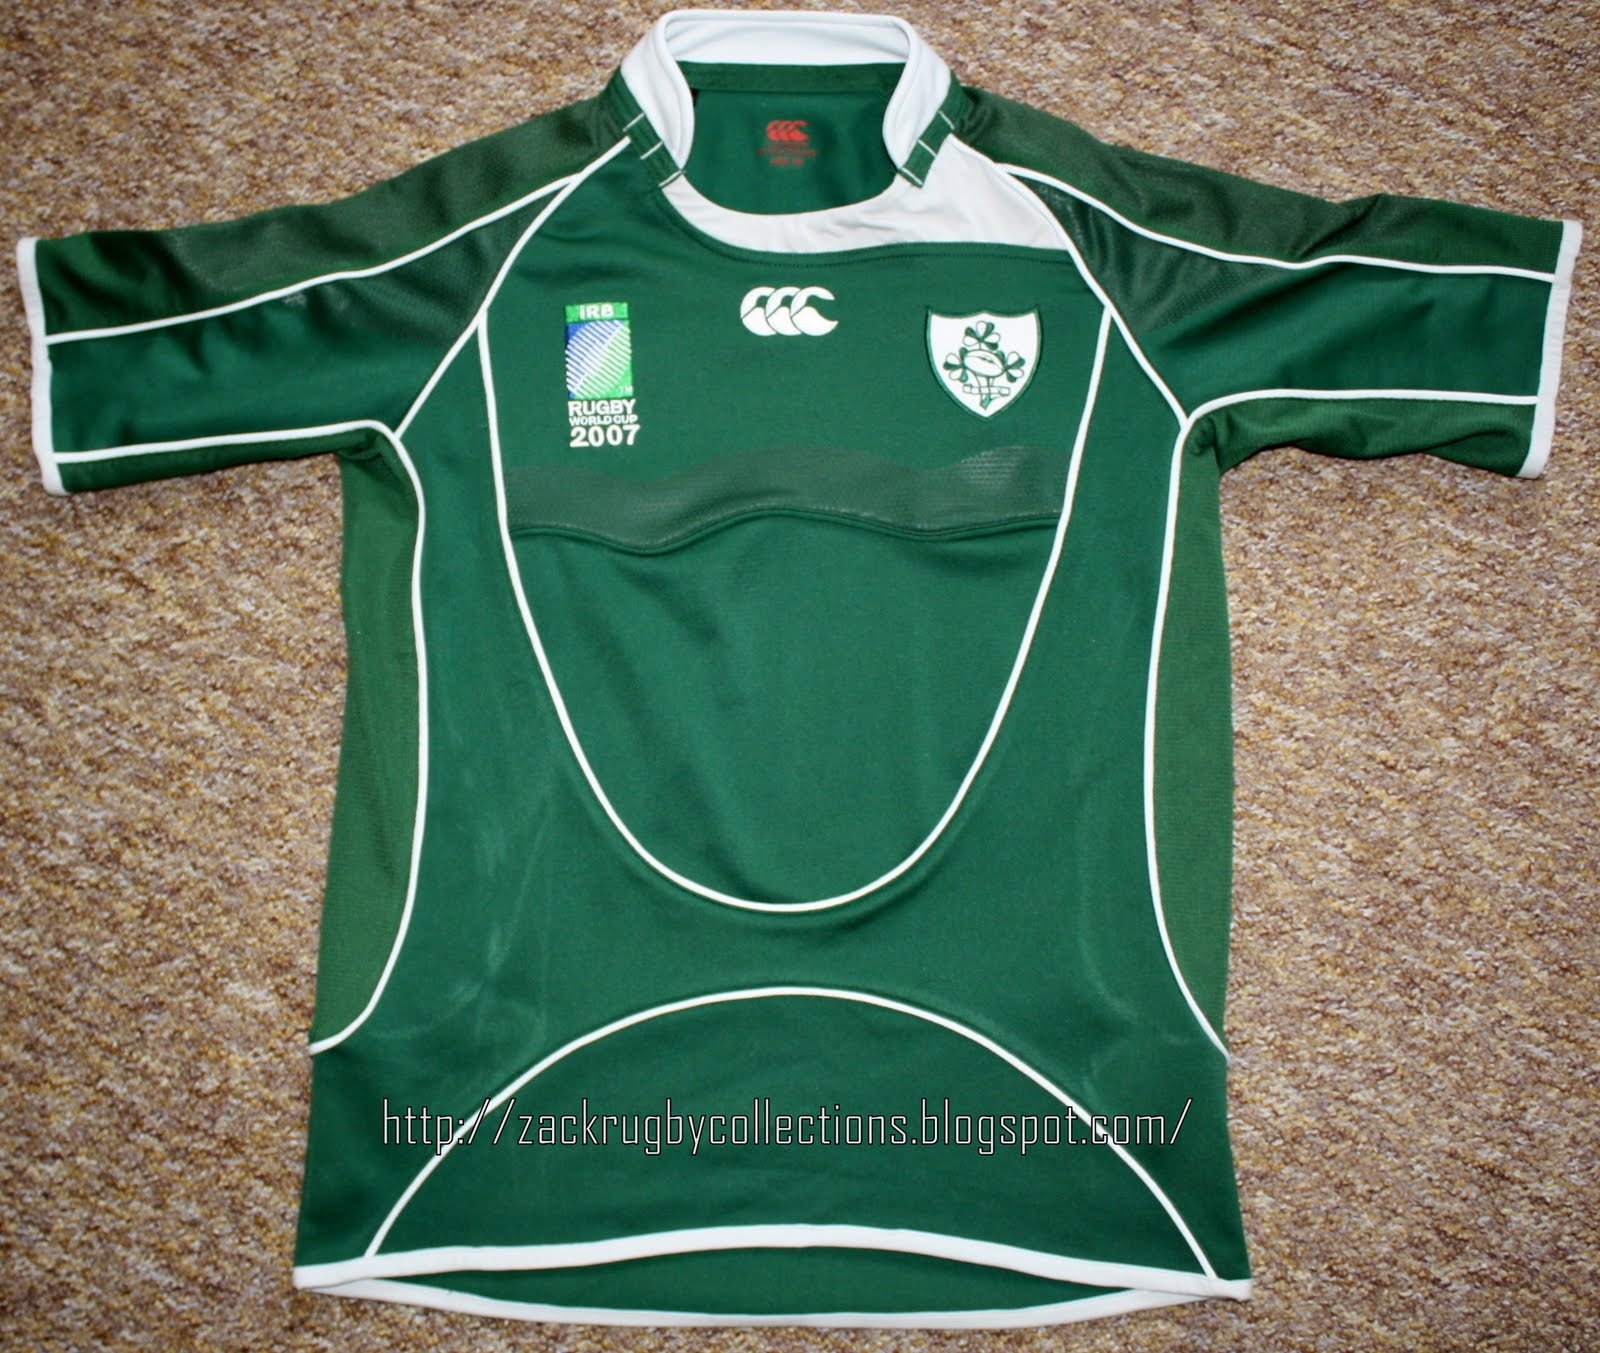 d89abd1ca22 Ireland Pro Rugby World Cup 2007 made by Canterbury. Official rugby jersey  released for the 2007 World Cup rugby season. Material: 100% Polyester.